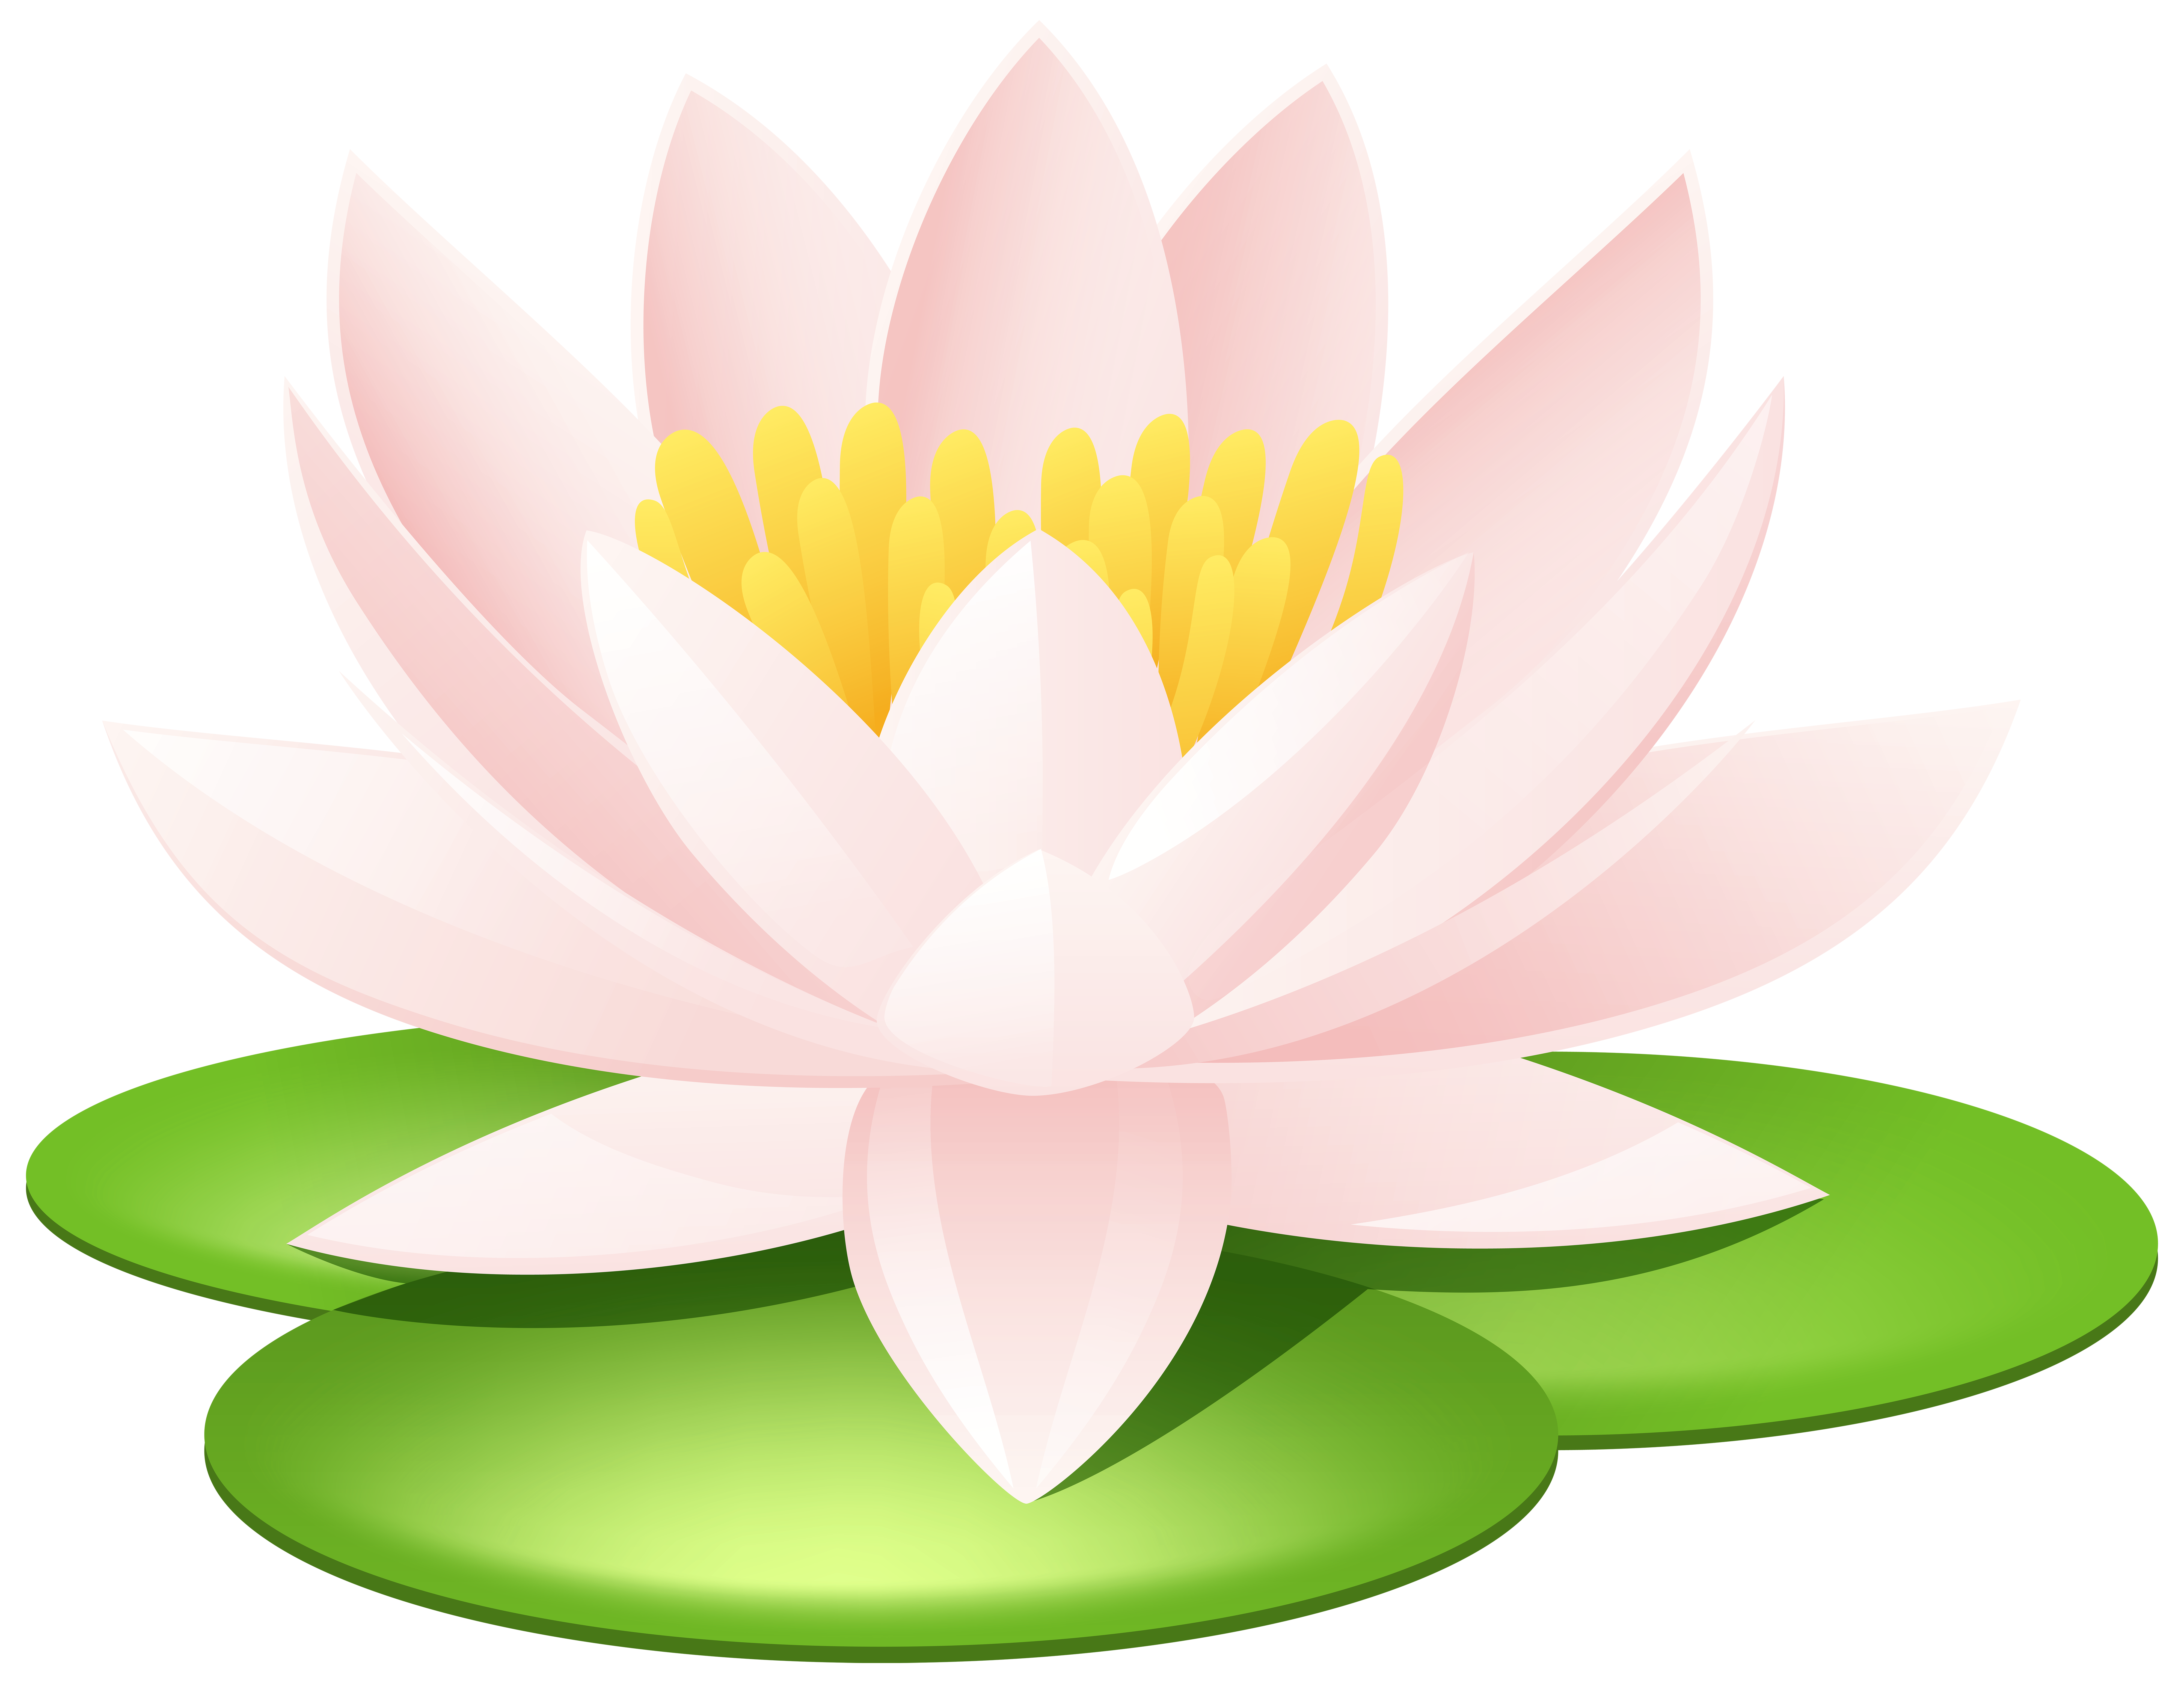 Lily and cross clipart jpg royalty free stock 28+ Collection of Water Lily Clipart Png | High quality, free ... jpg royalty free stock